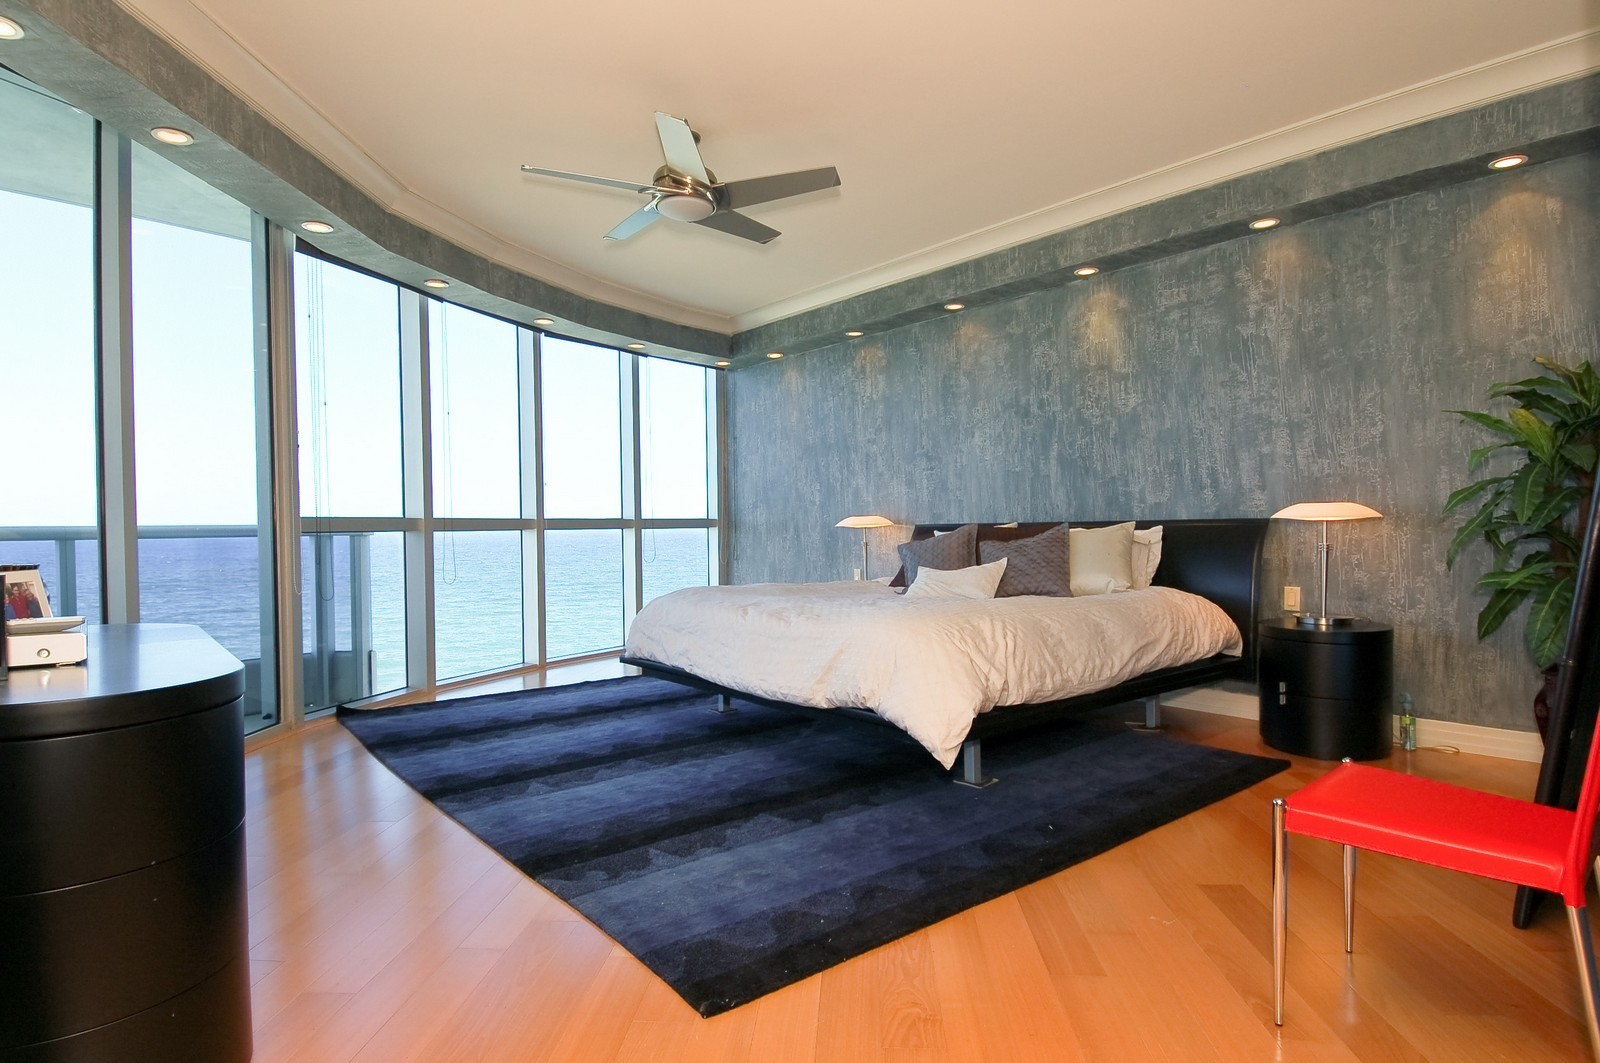 Real Estate Photography - 1600 S Ocean Blvd, Apt 802, Pompano Beach, FL, 33062 - Master Bedroom